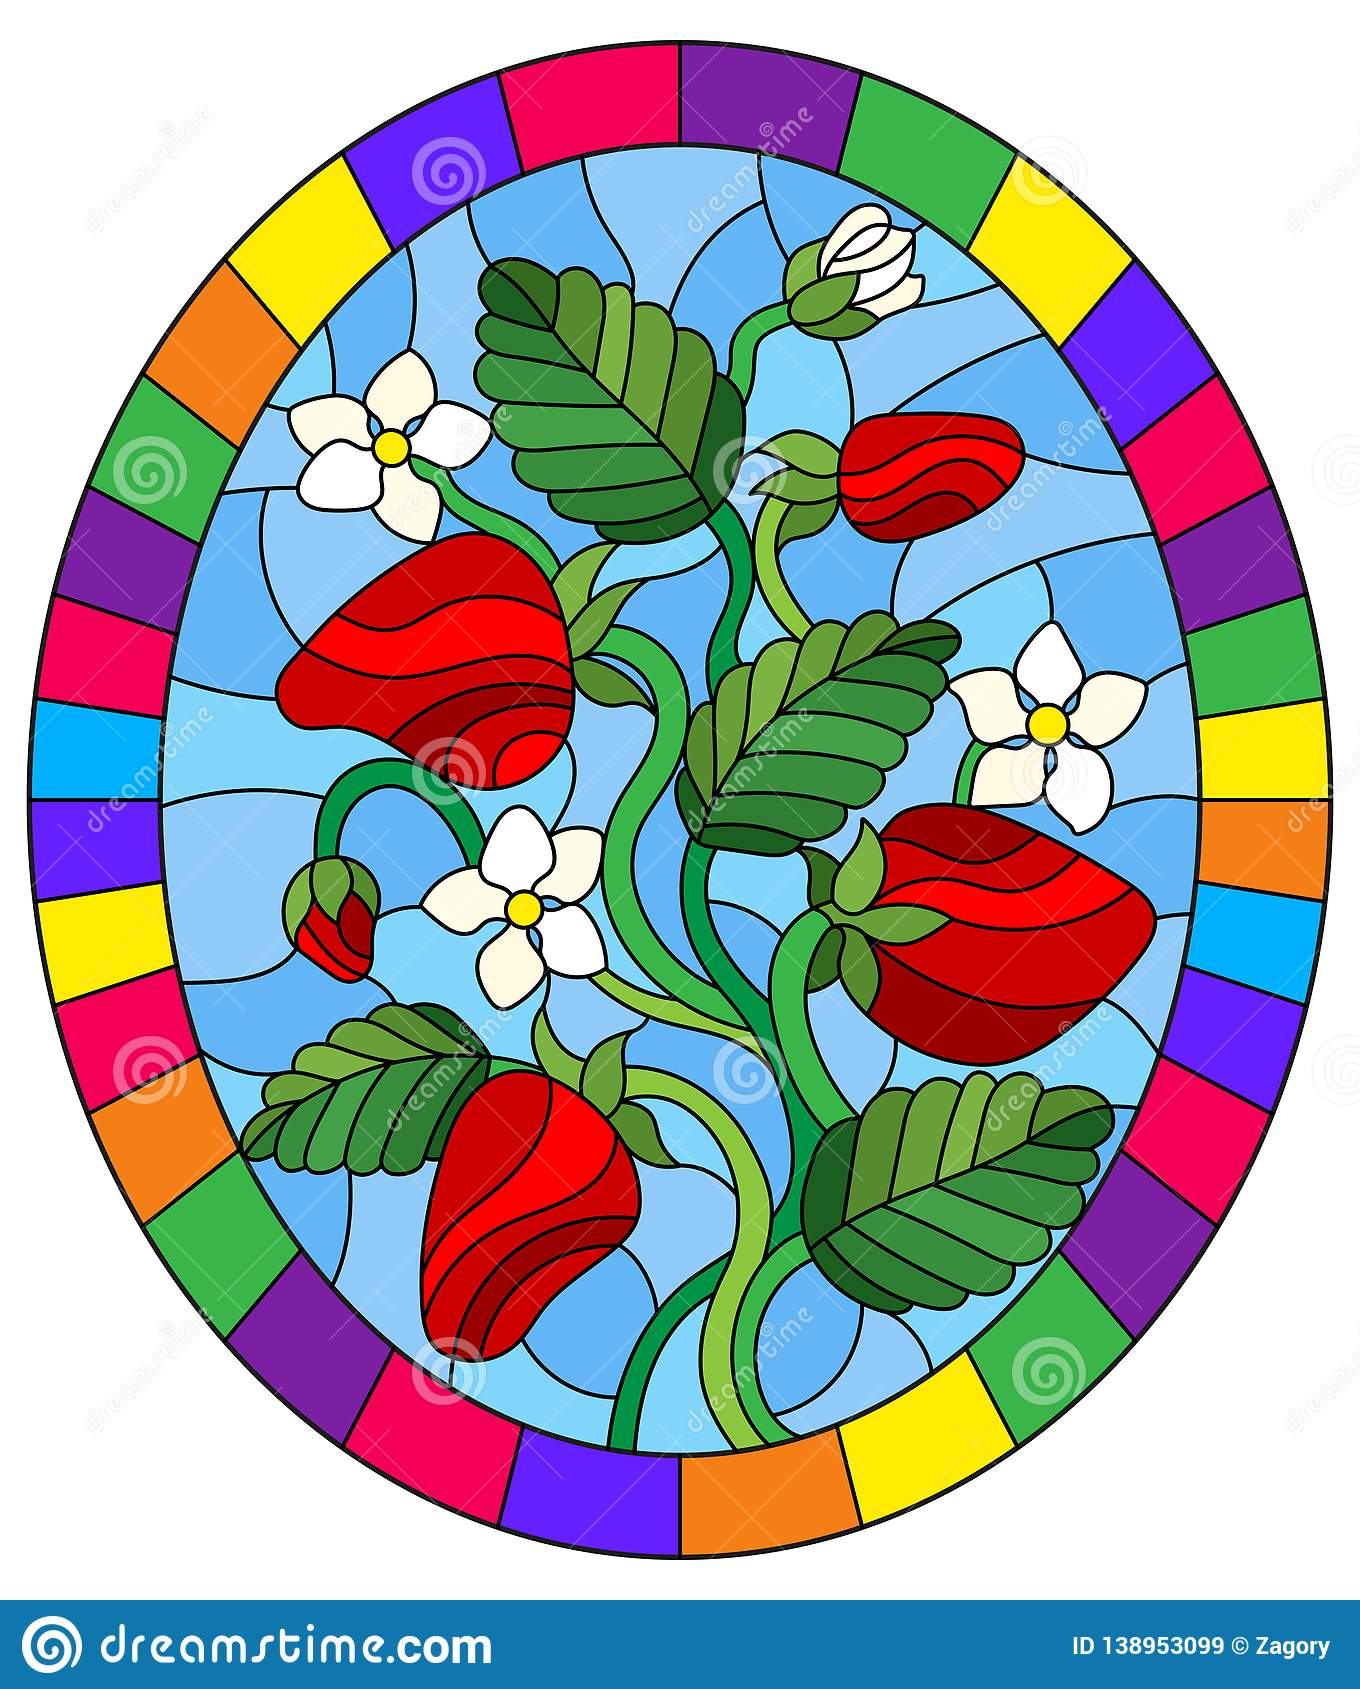 Illustration in Stained glass style with berries, leaves and strawberry flowers, oval picture in bright frame